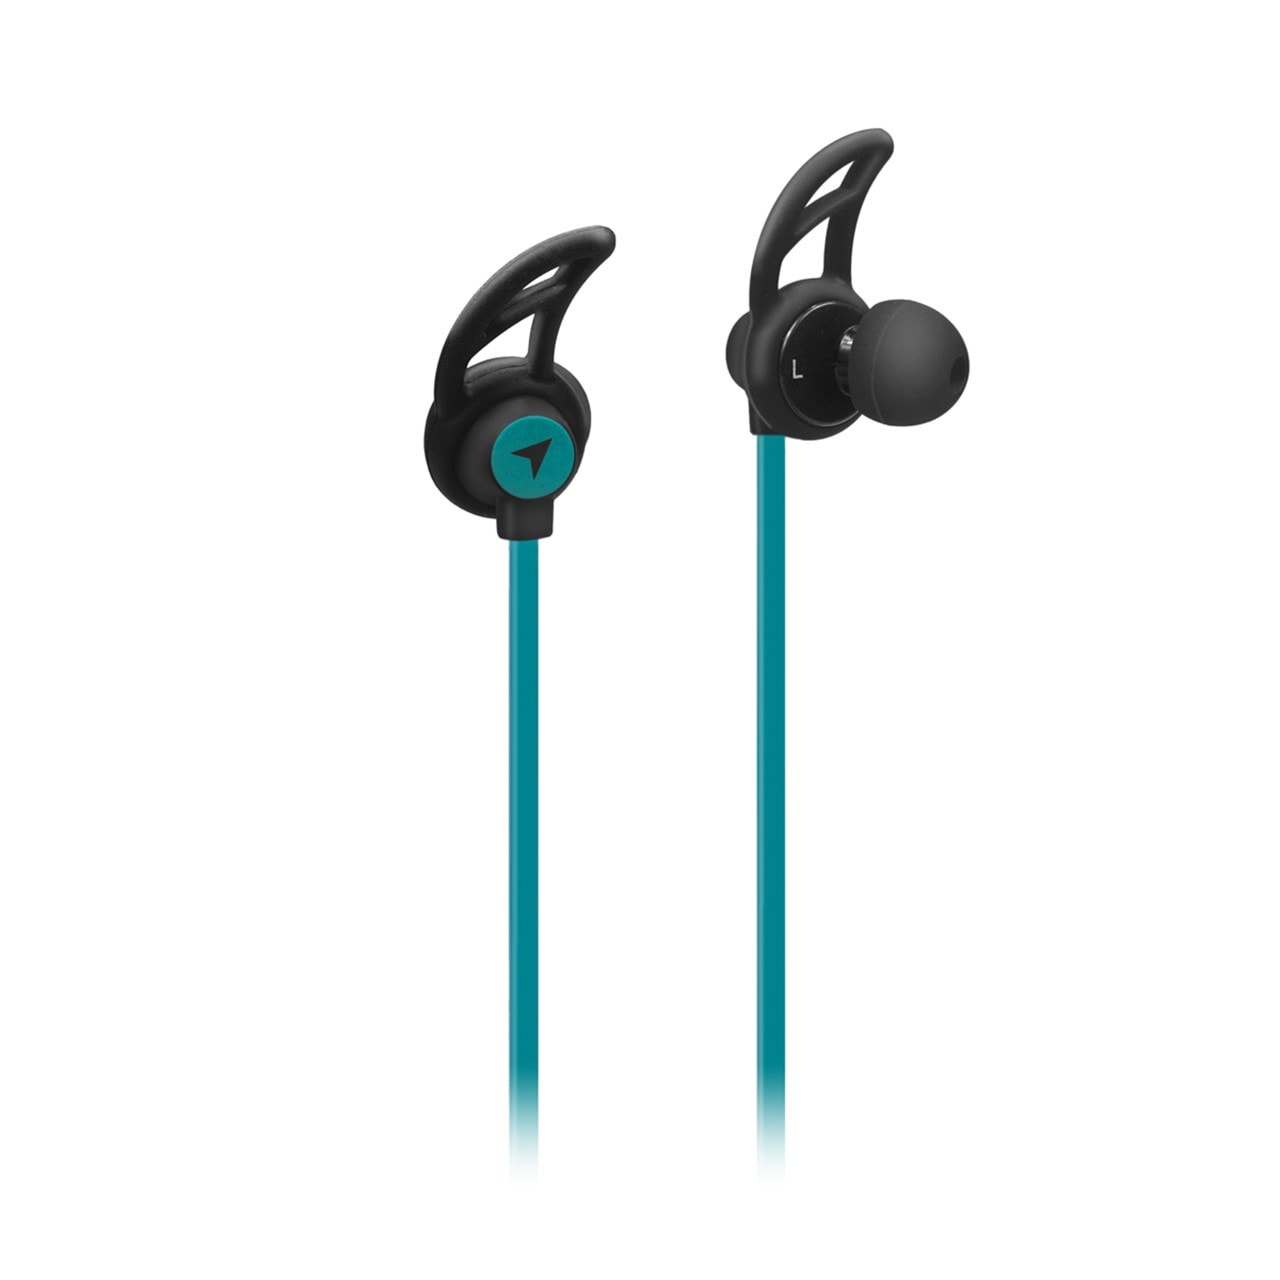 Roam Sports Pro Teal Earphones - 1